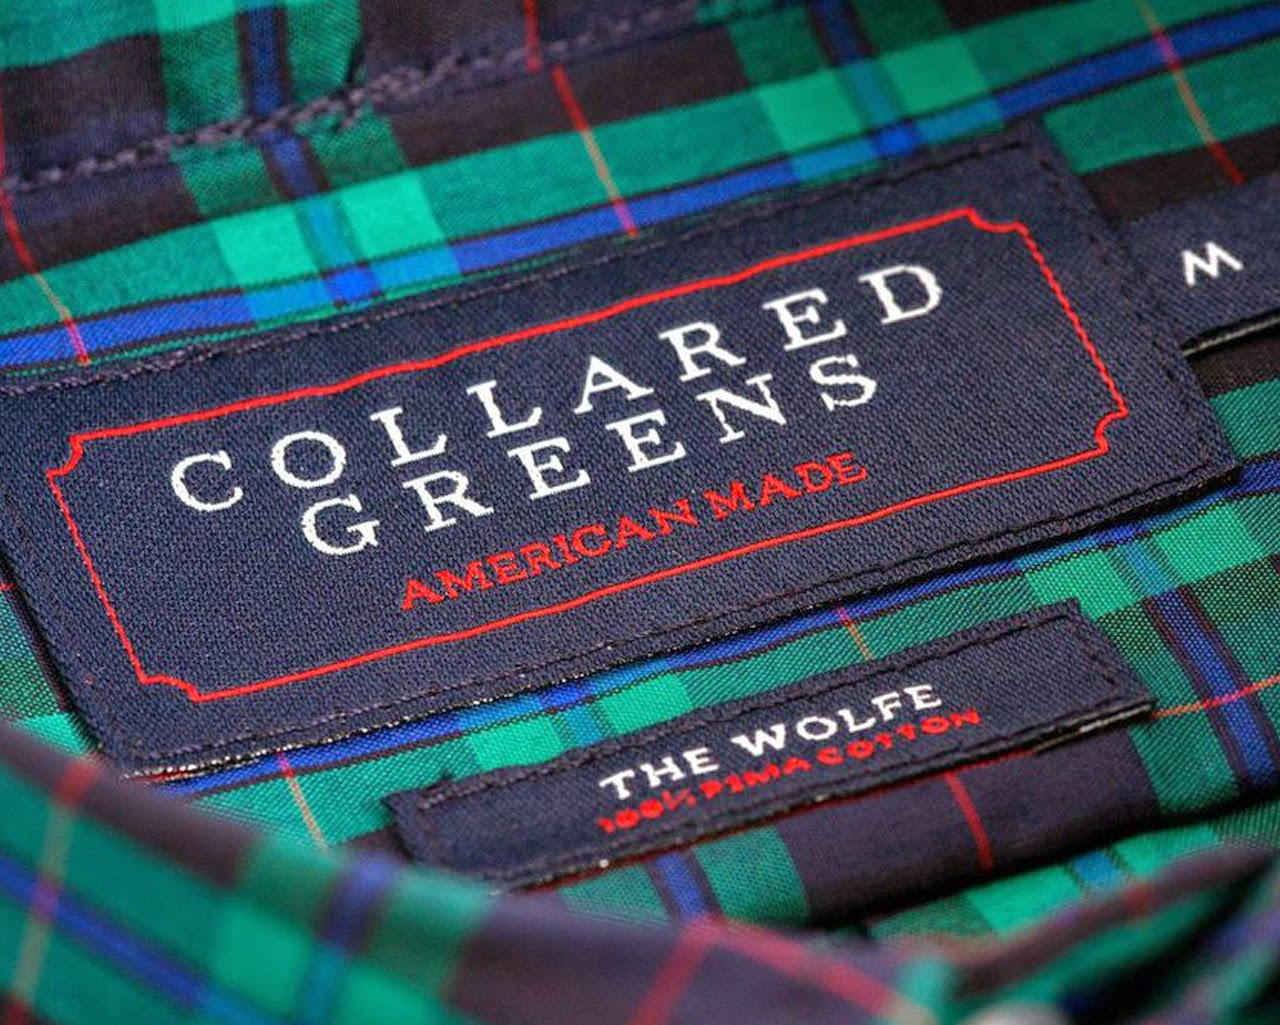 Collared Greens: The Wolfe Button Down